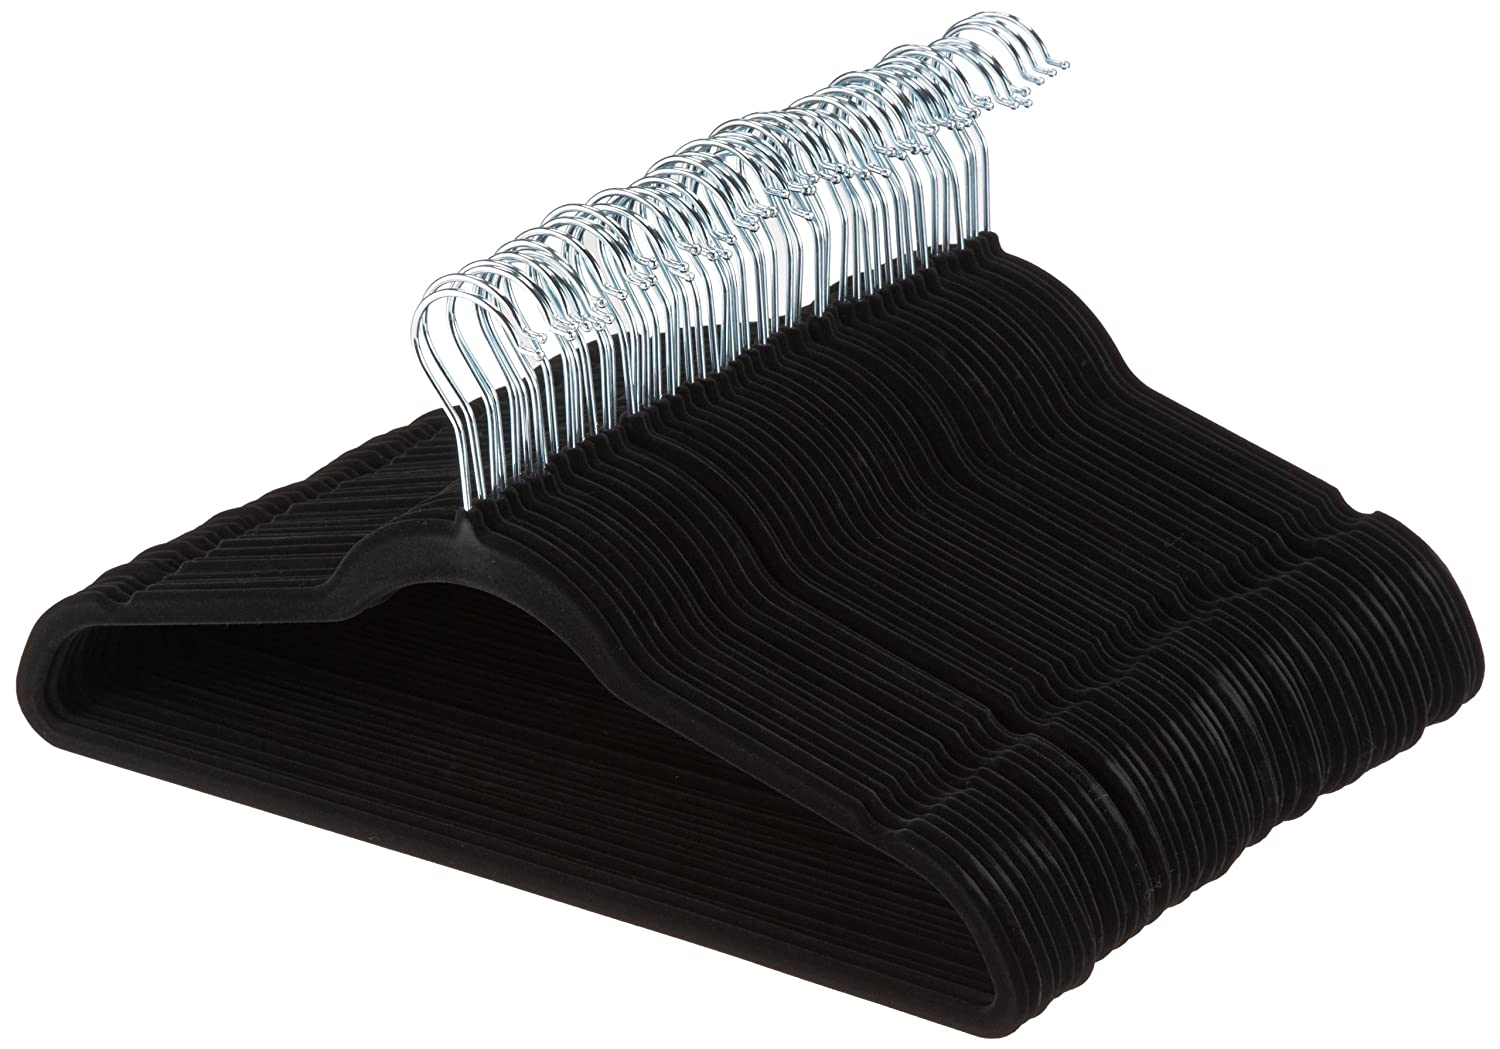 AmazonBasics Velvet Suit Hangers - 100-Pack, Black